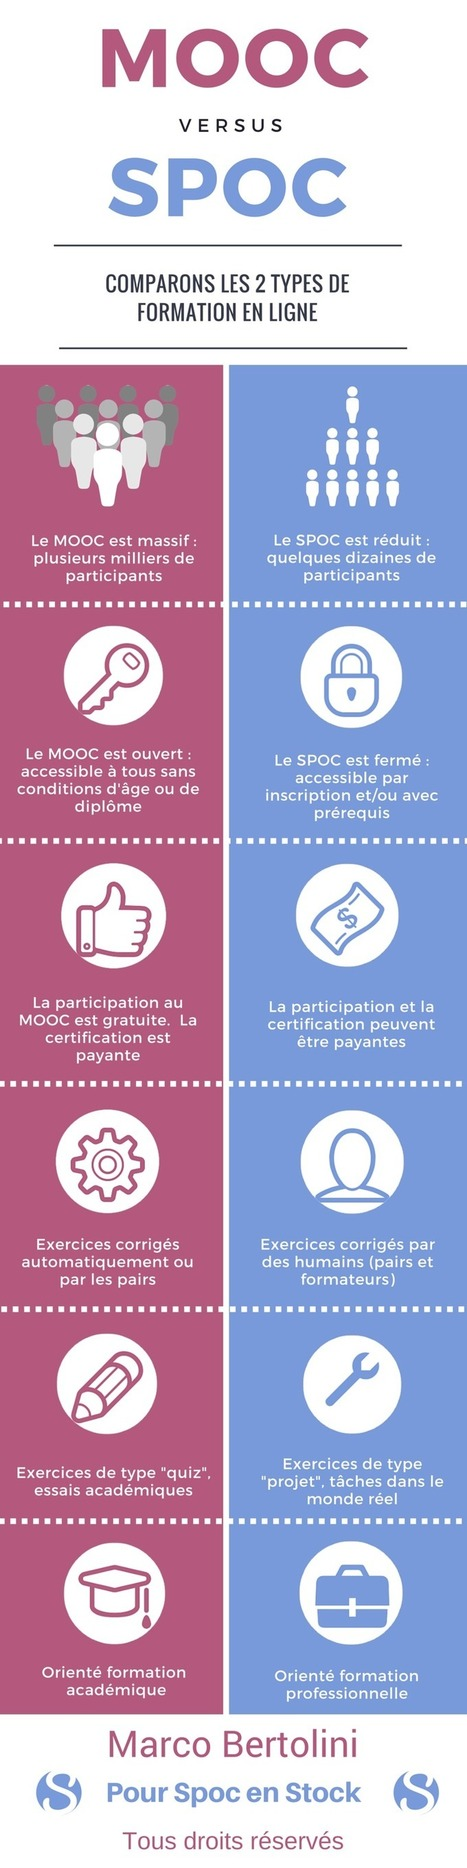 Infographie : MOOC versus SPOC   | Sciences du numérique et e-education | Scoop.it